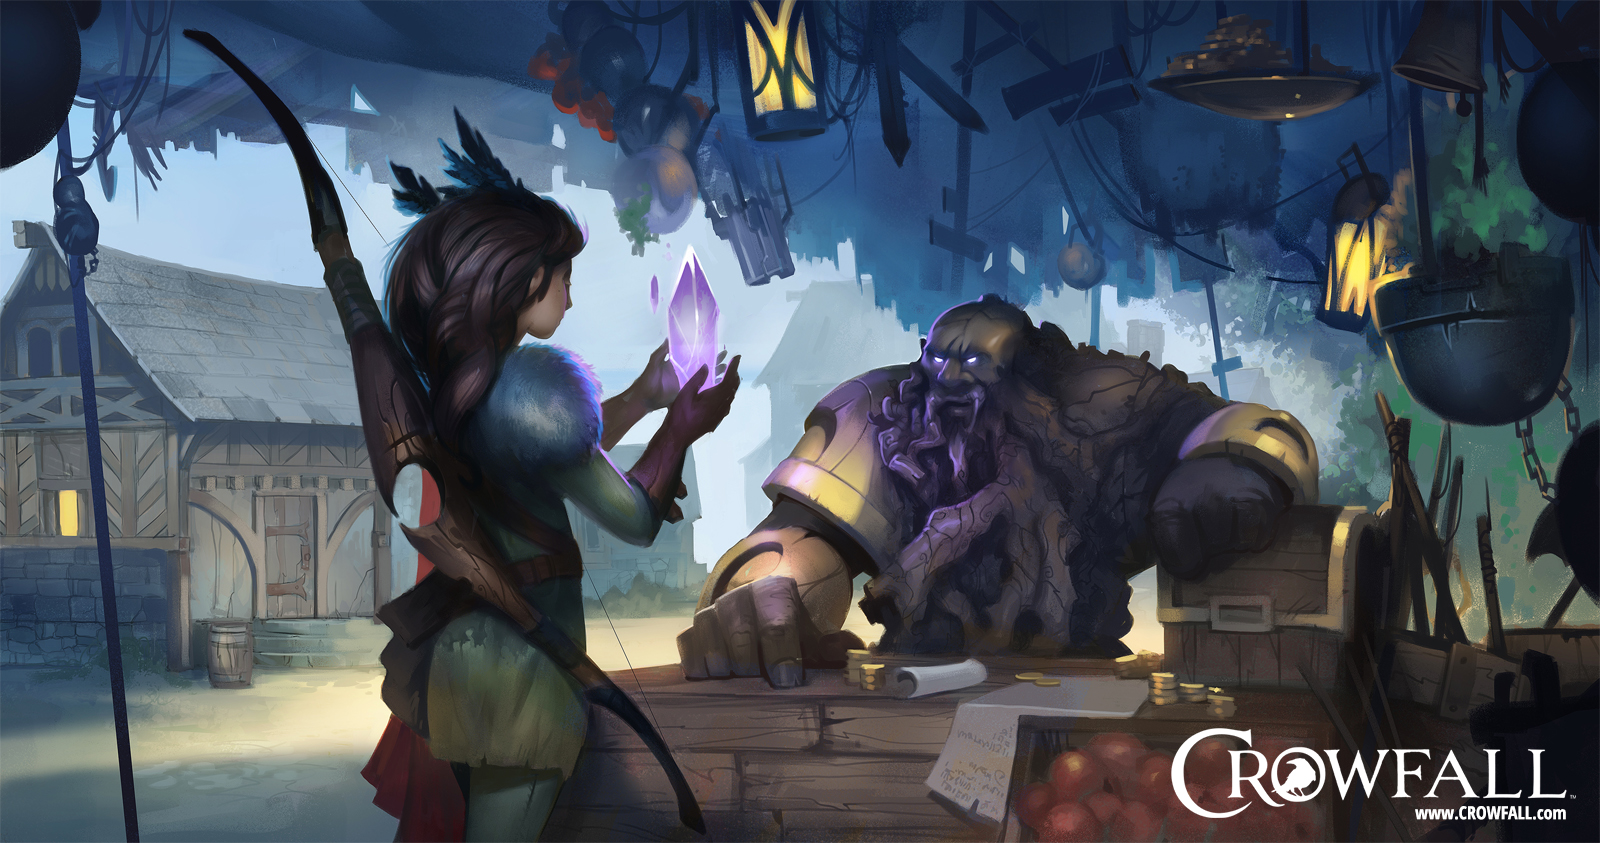 Crowfall Developers Reach Funding Threshold